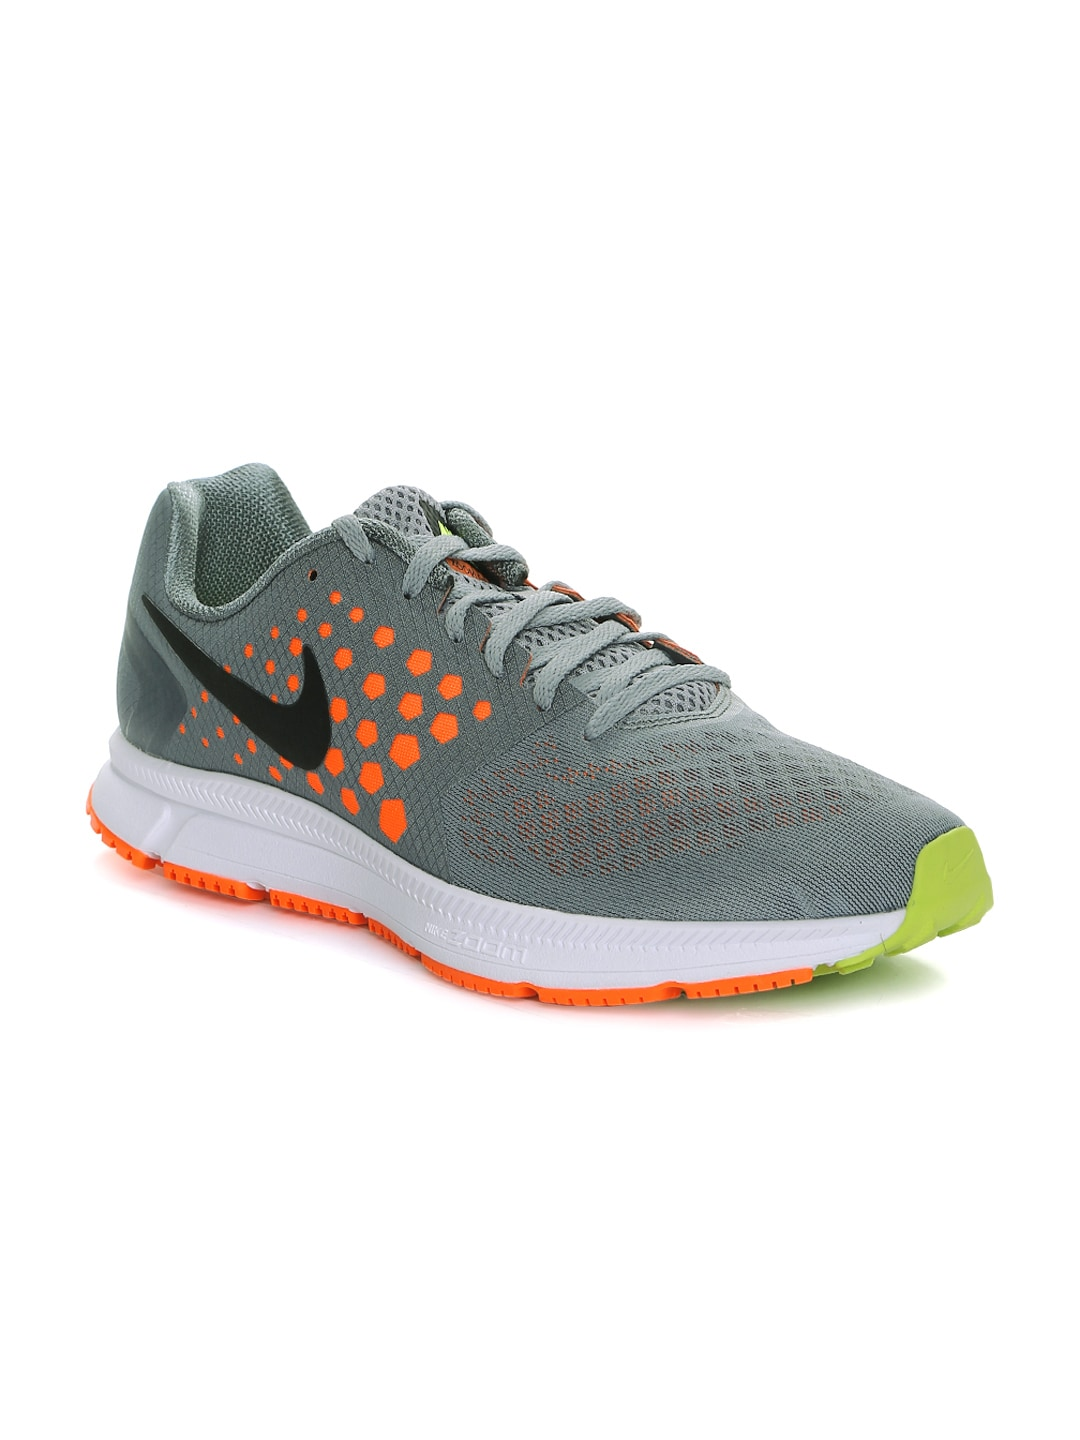 new concept 357cd 81d5c Nike Shoes for Men - Buy Mens Nike Shoes Online  Myntra